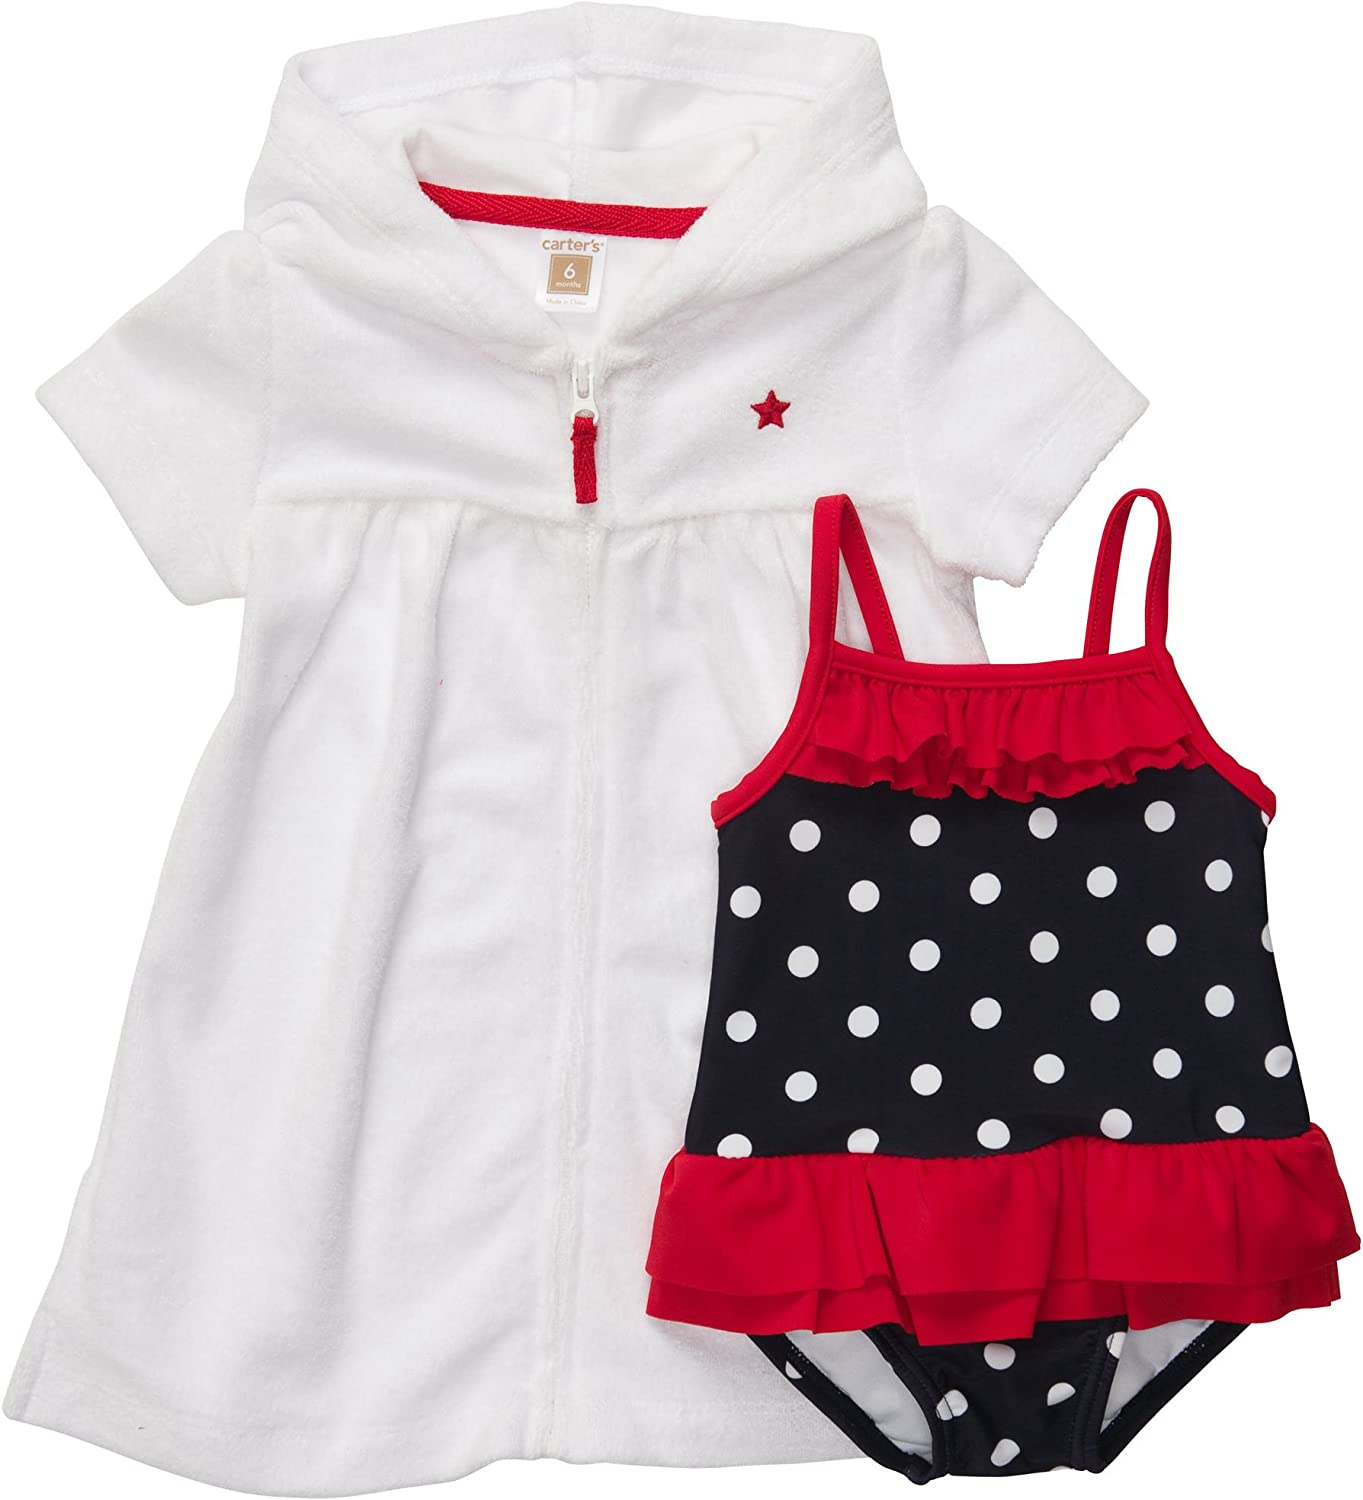 Carters Baby Girls 2-piece Swimsuit /& Cover up Set